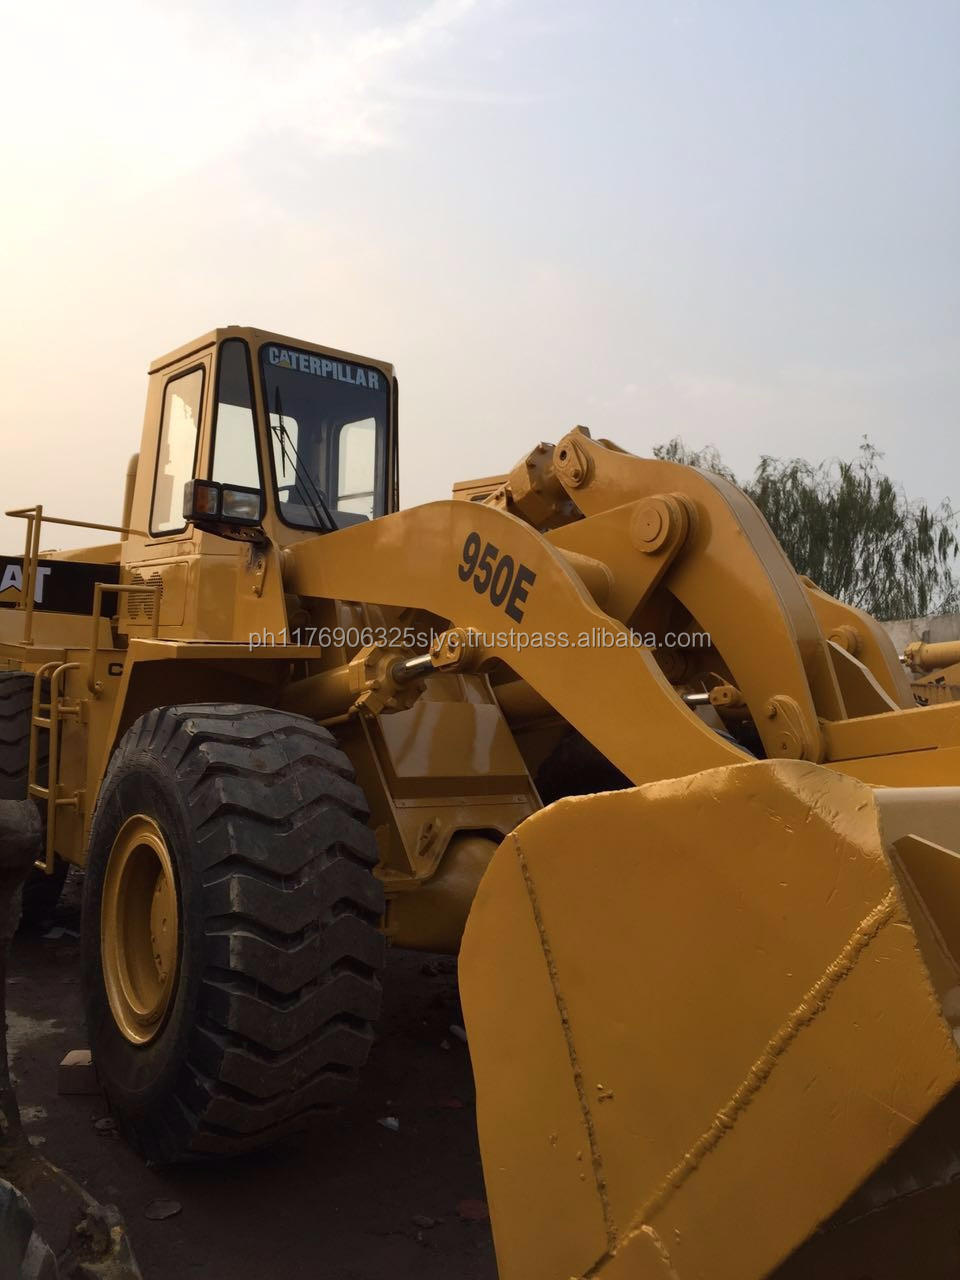 used original Caterpillar 950e cat 950 wheel loader for sale (whatsapp:0086-13817530084)